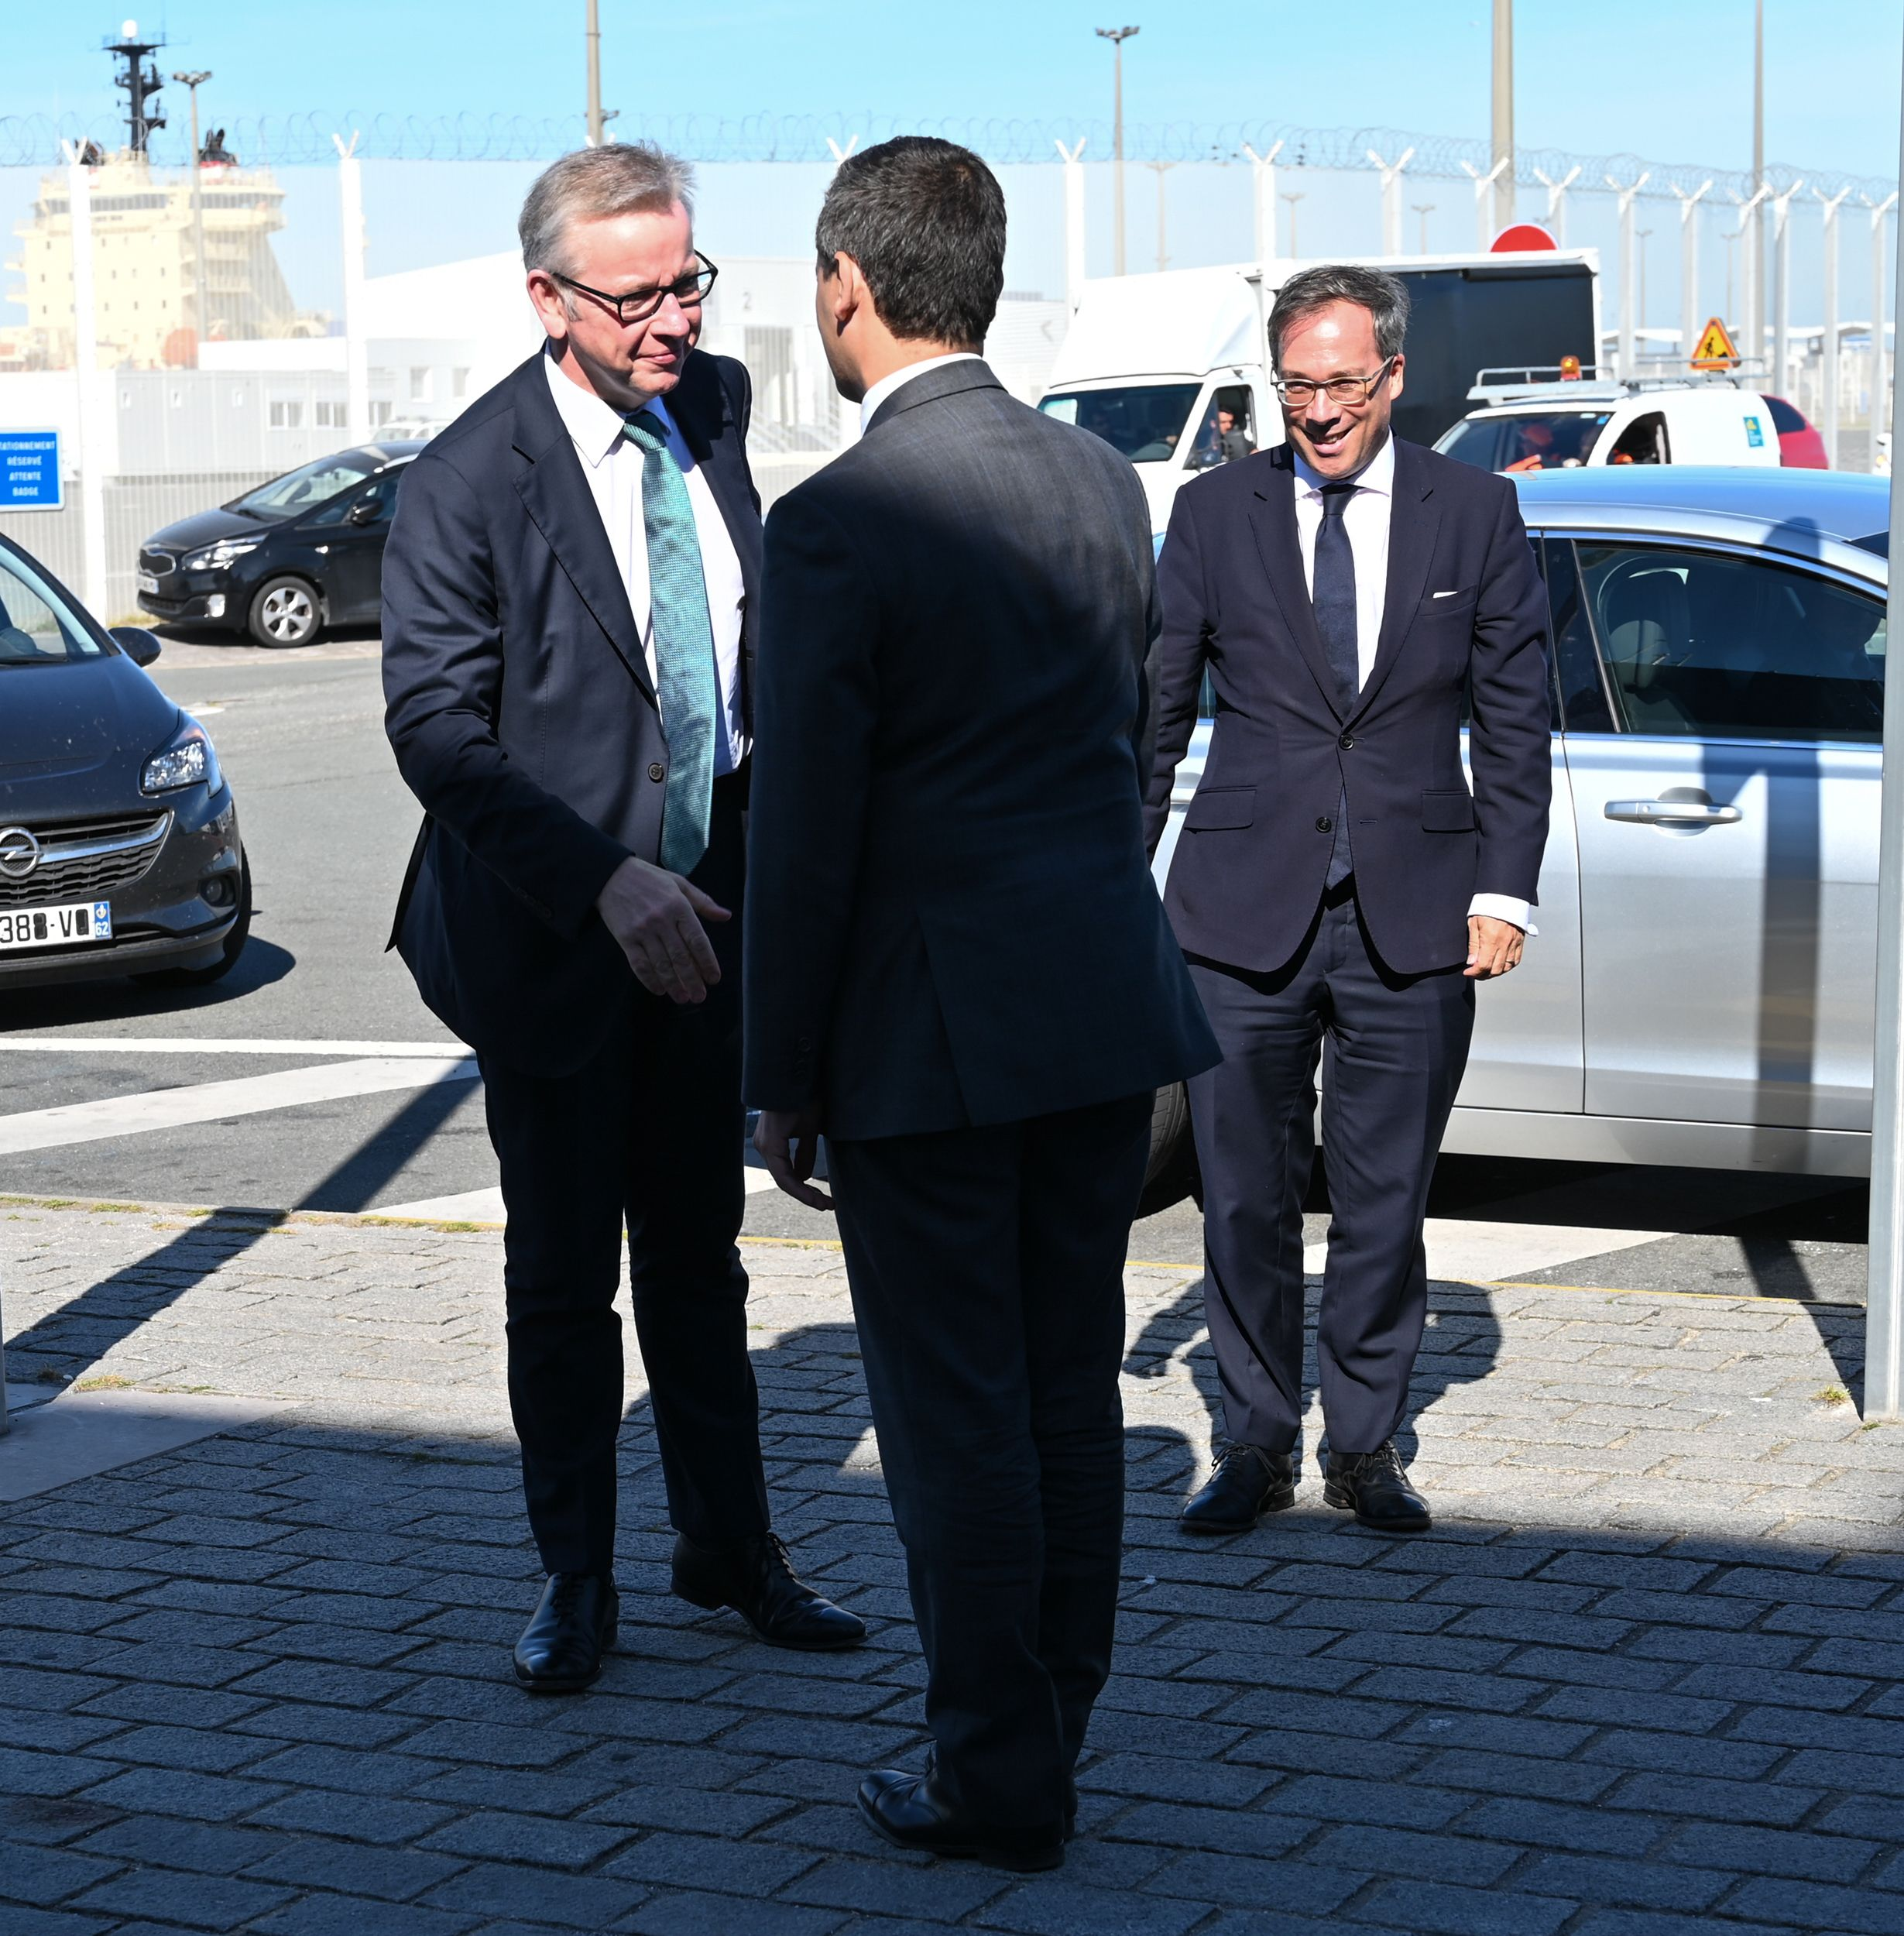 French Minister of Public Action and Accounts Gerald Darmanin (C) shakes hands with Britain's Chancellor of the Duchy of Lancaster Michael Gove (L) in the northern French port of Calais on August 30, 2019. (Photo by DENIS CHARLET / AFP)        (Photo credit should read DENIS CHARLET/AFP/Getty Images)